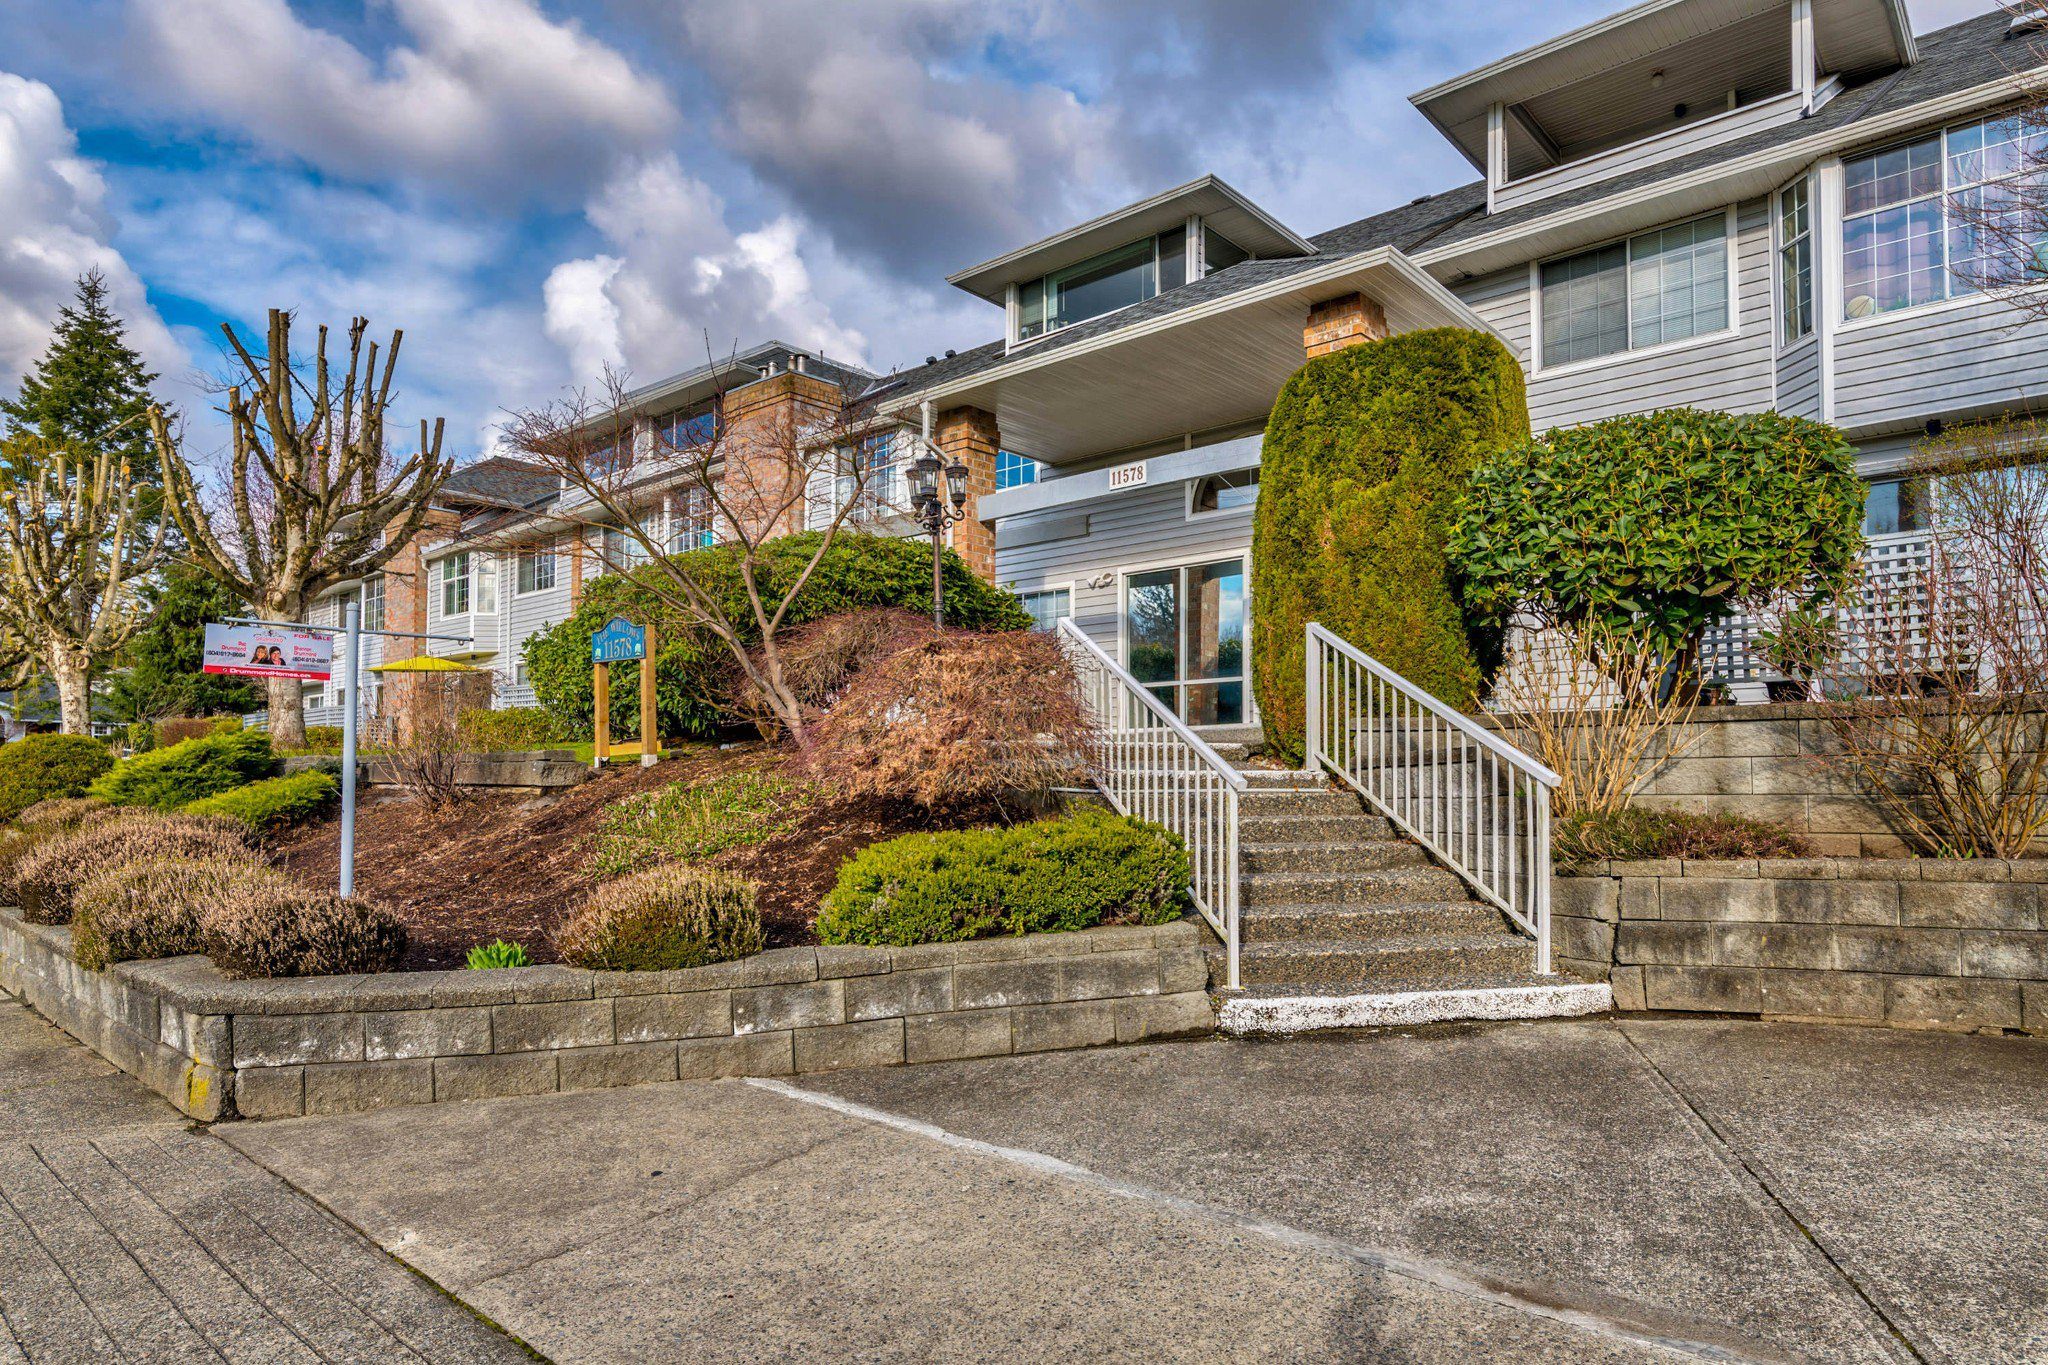 Main Photo: 109 11578 225 Street in Maple Ridge: East Central Condo for sale : MLS®# R2520190